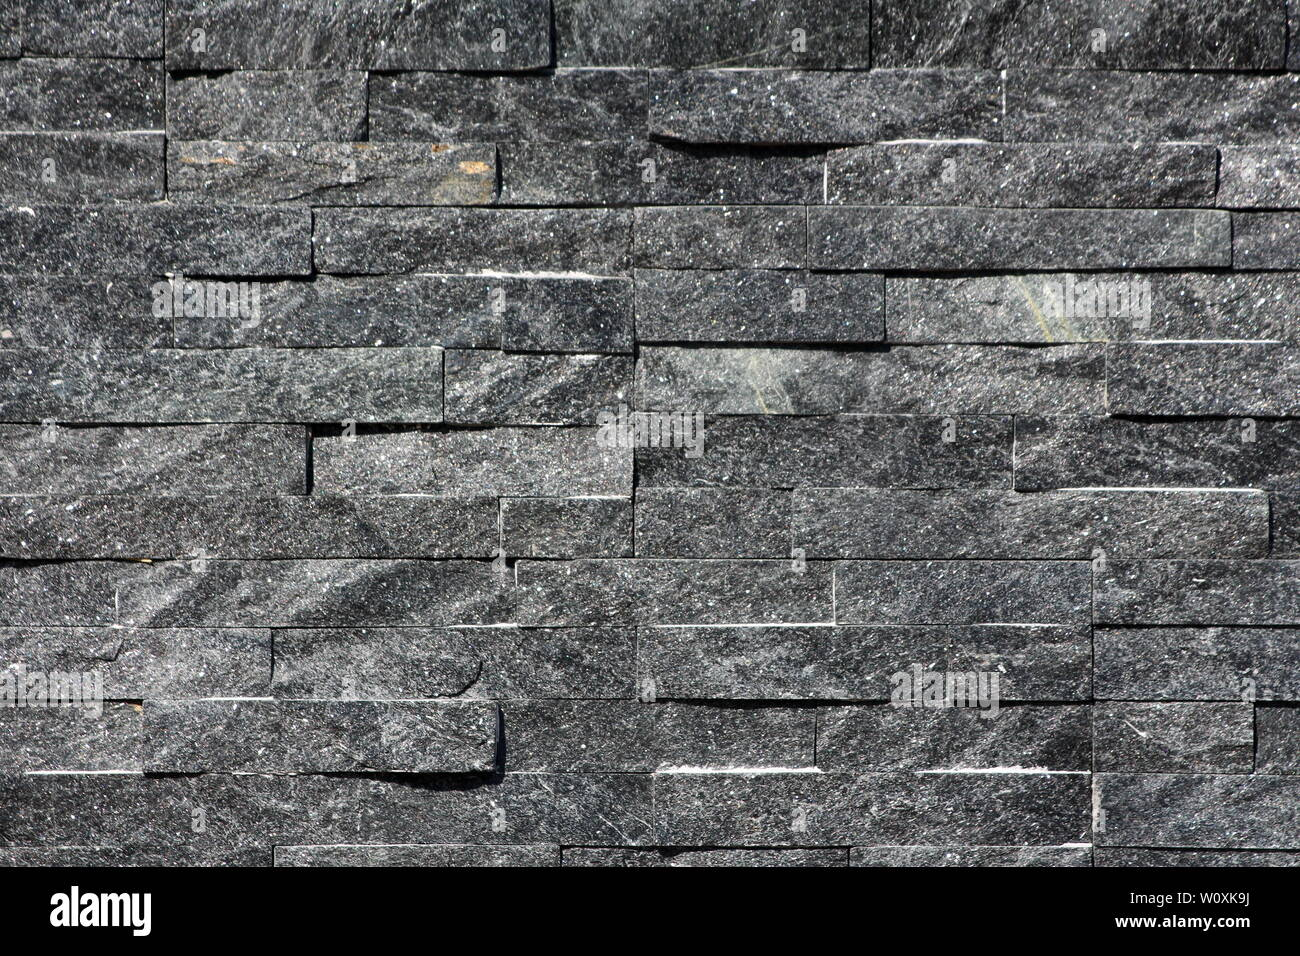 https www alamy com rows of natural dark stone tiles on family house wall texture background wallpaper on warm sunny day image258741438 html